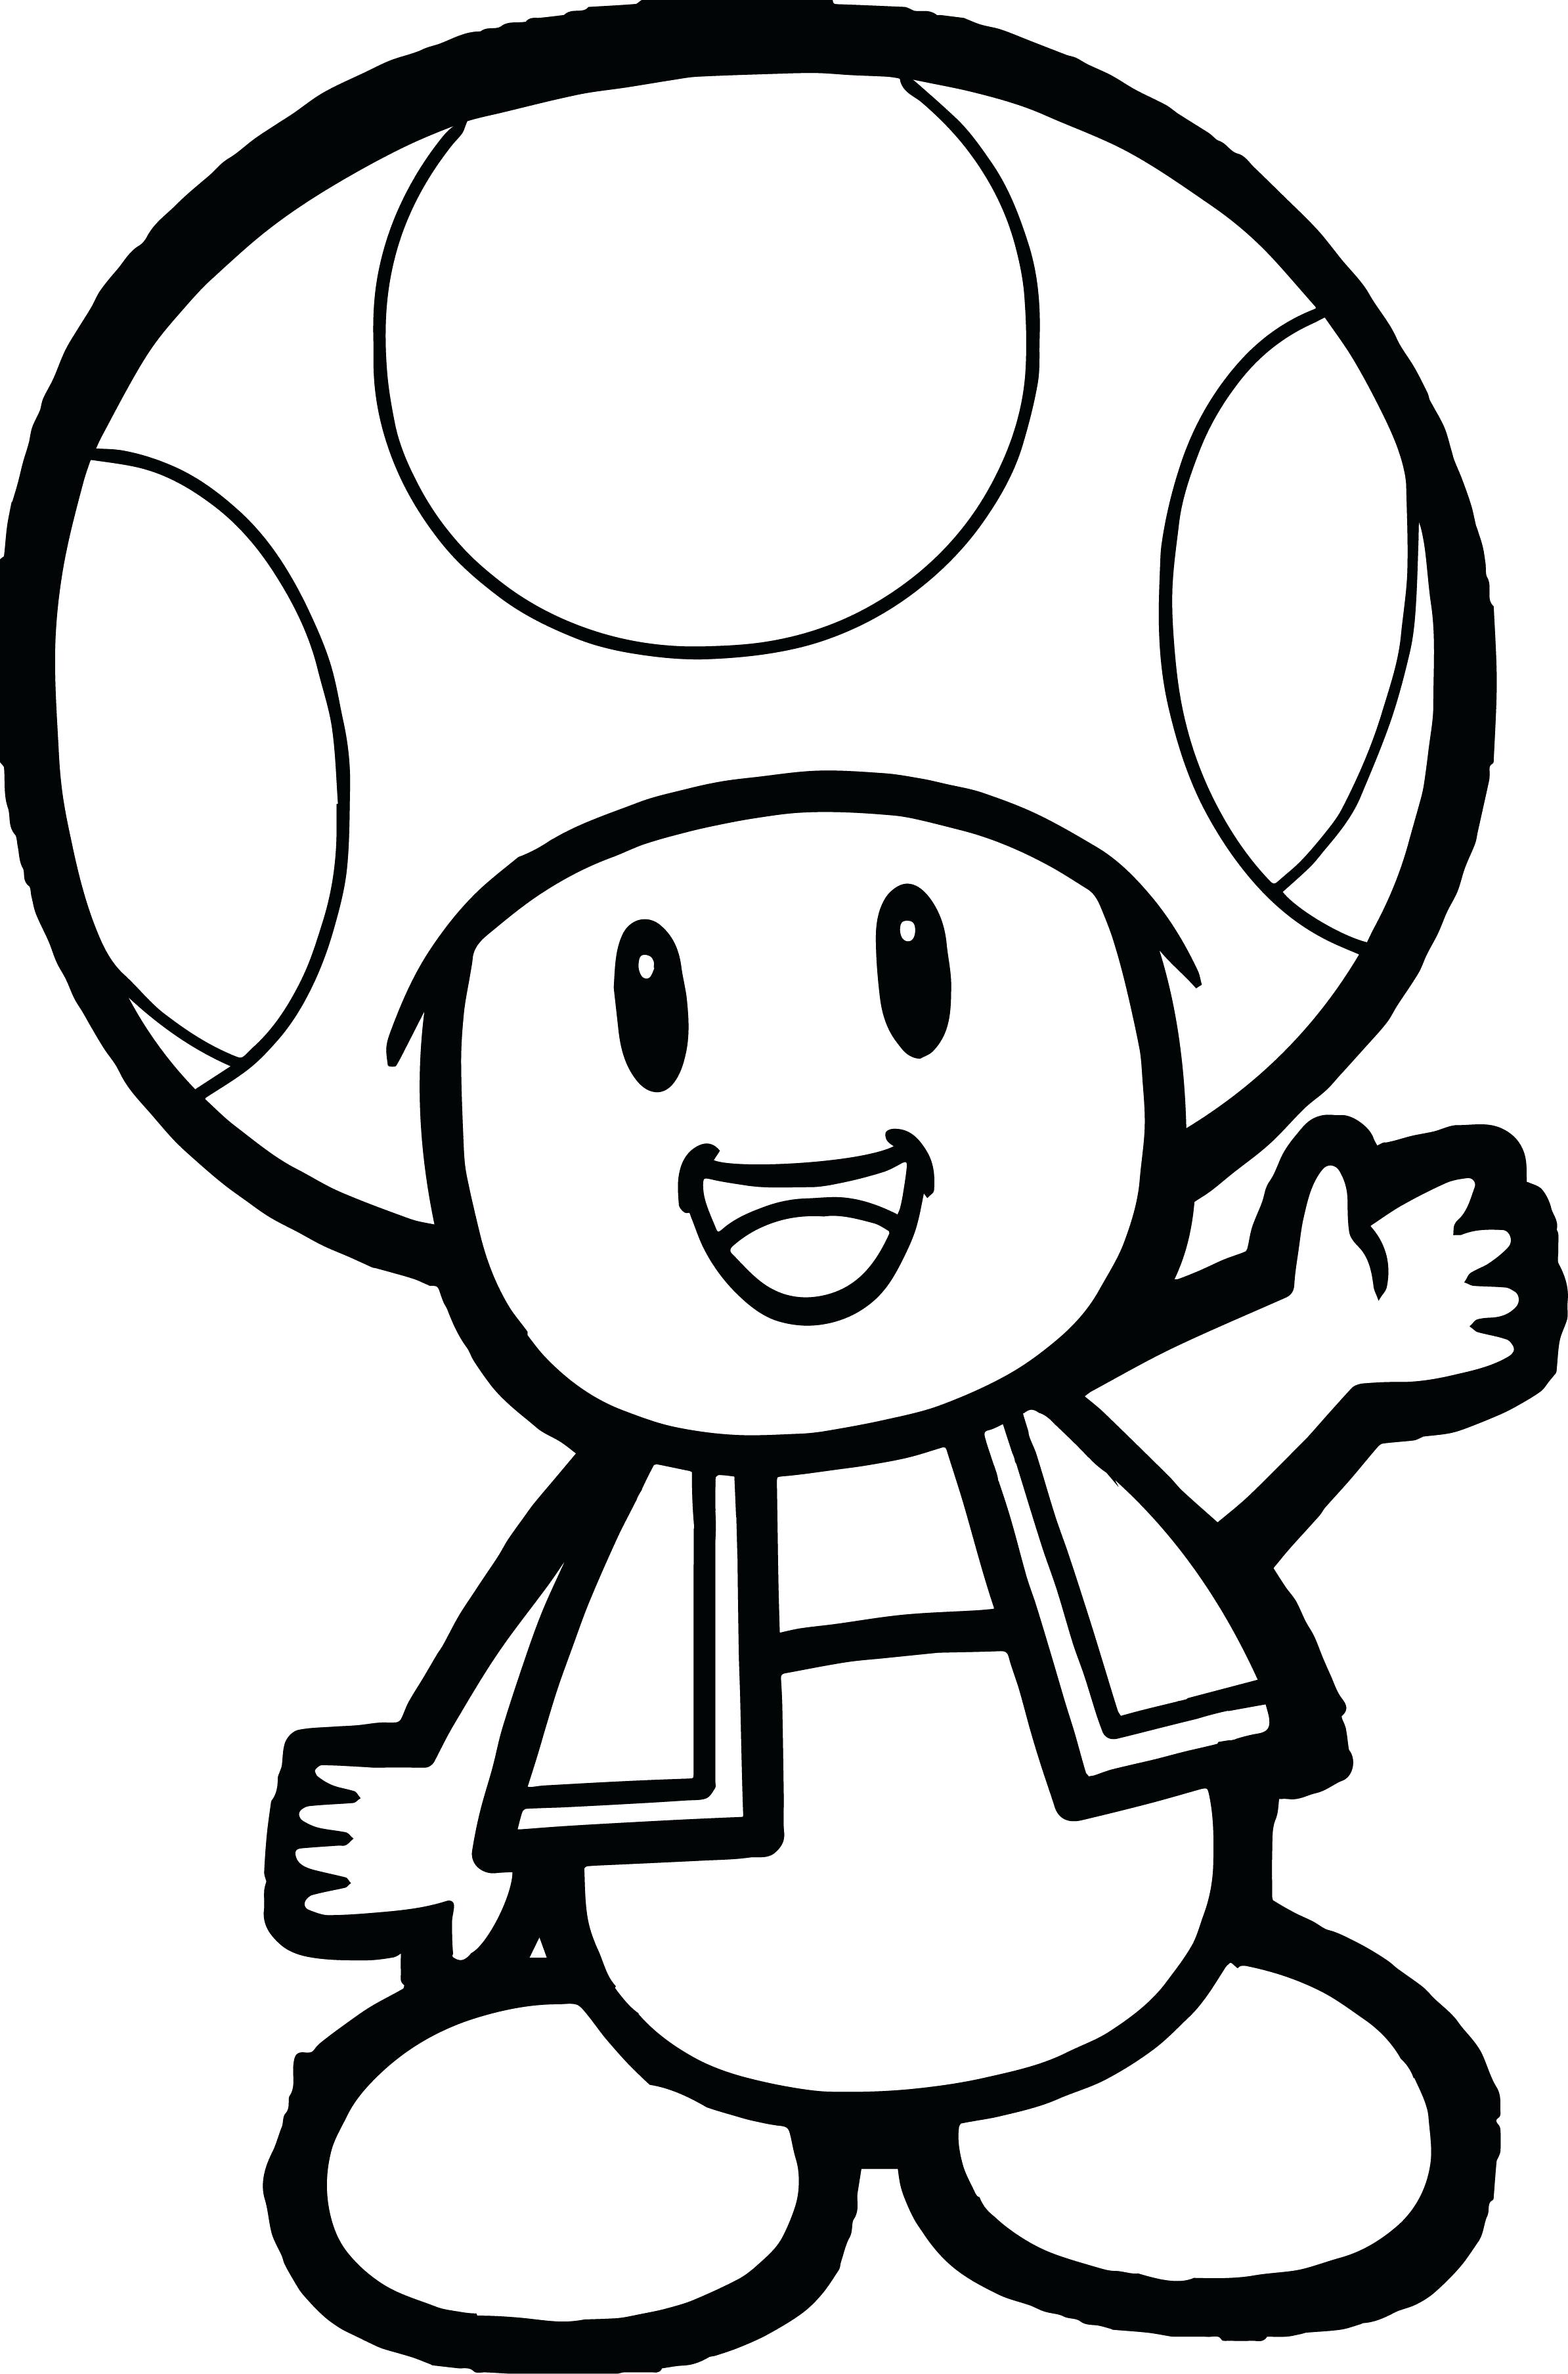 The Best Free Luigi Coloring Page Images Download From 50 Free